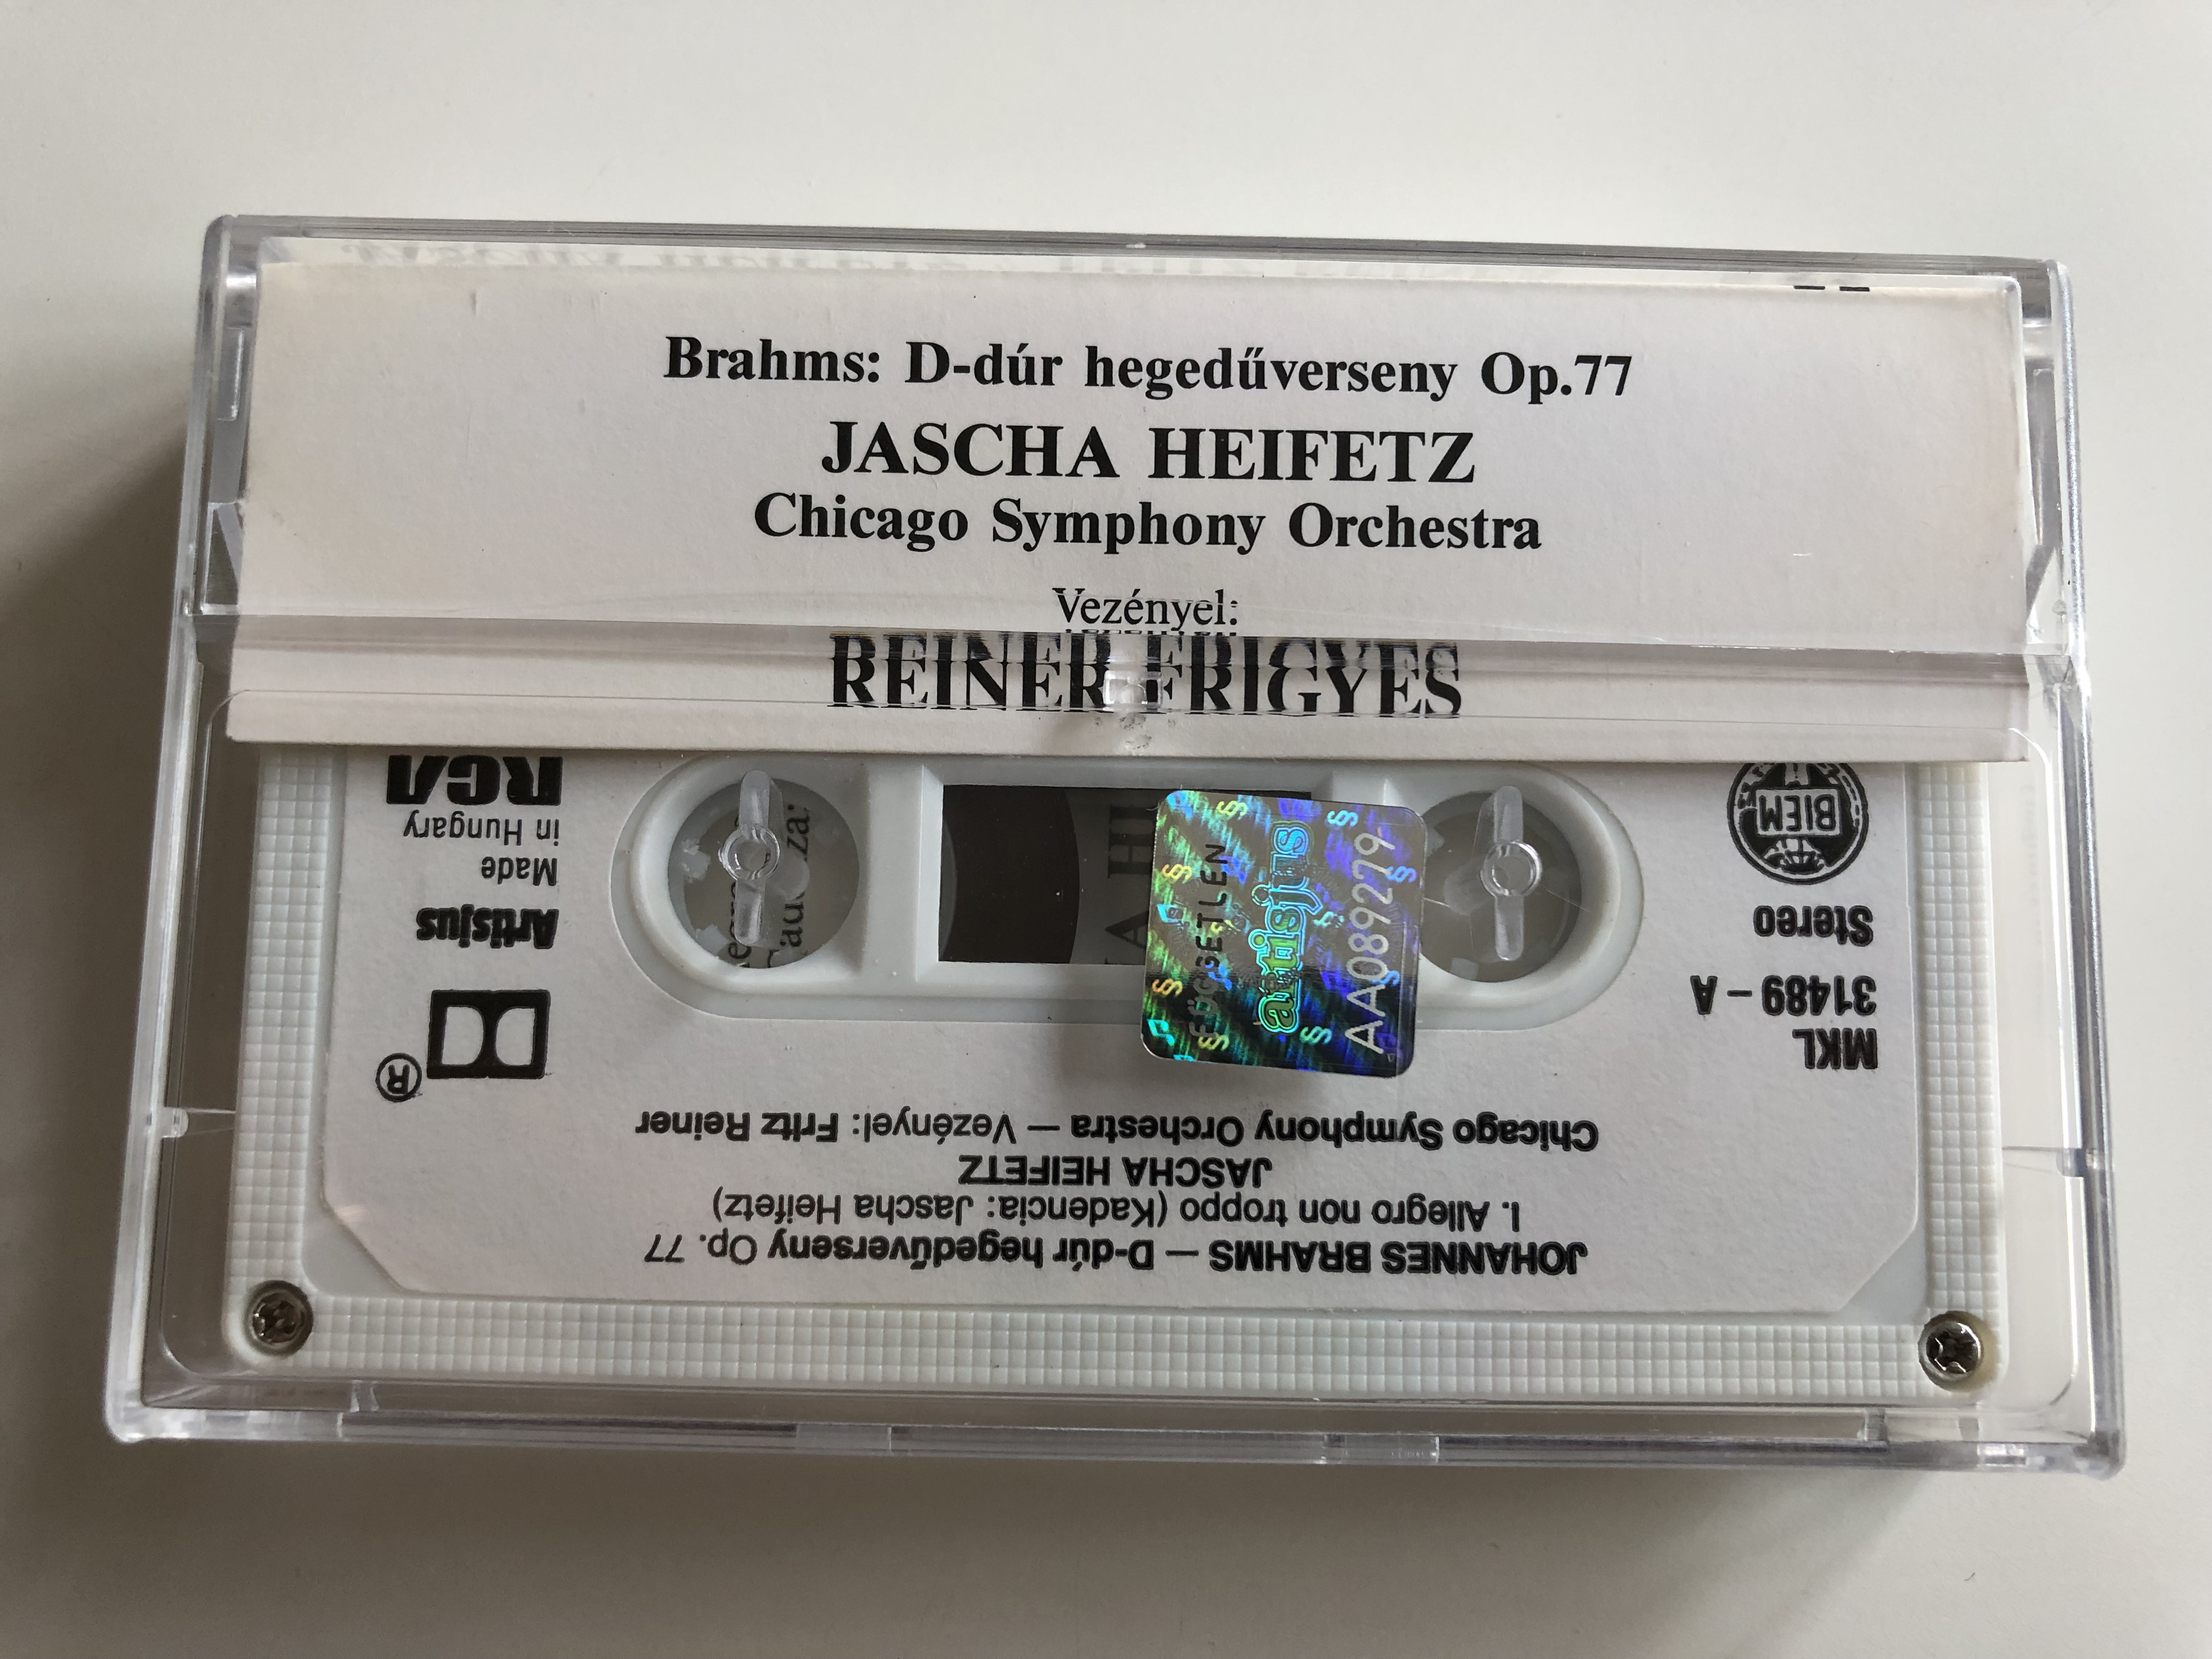 brahms-heged-verseny-violin-concerto-chicago-symphony-orchestra-conducted-reiner-frigyes-hungaroton-rca-cassette-stereo-mkl-31489-7-.jpg